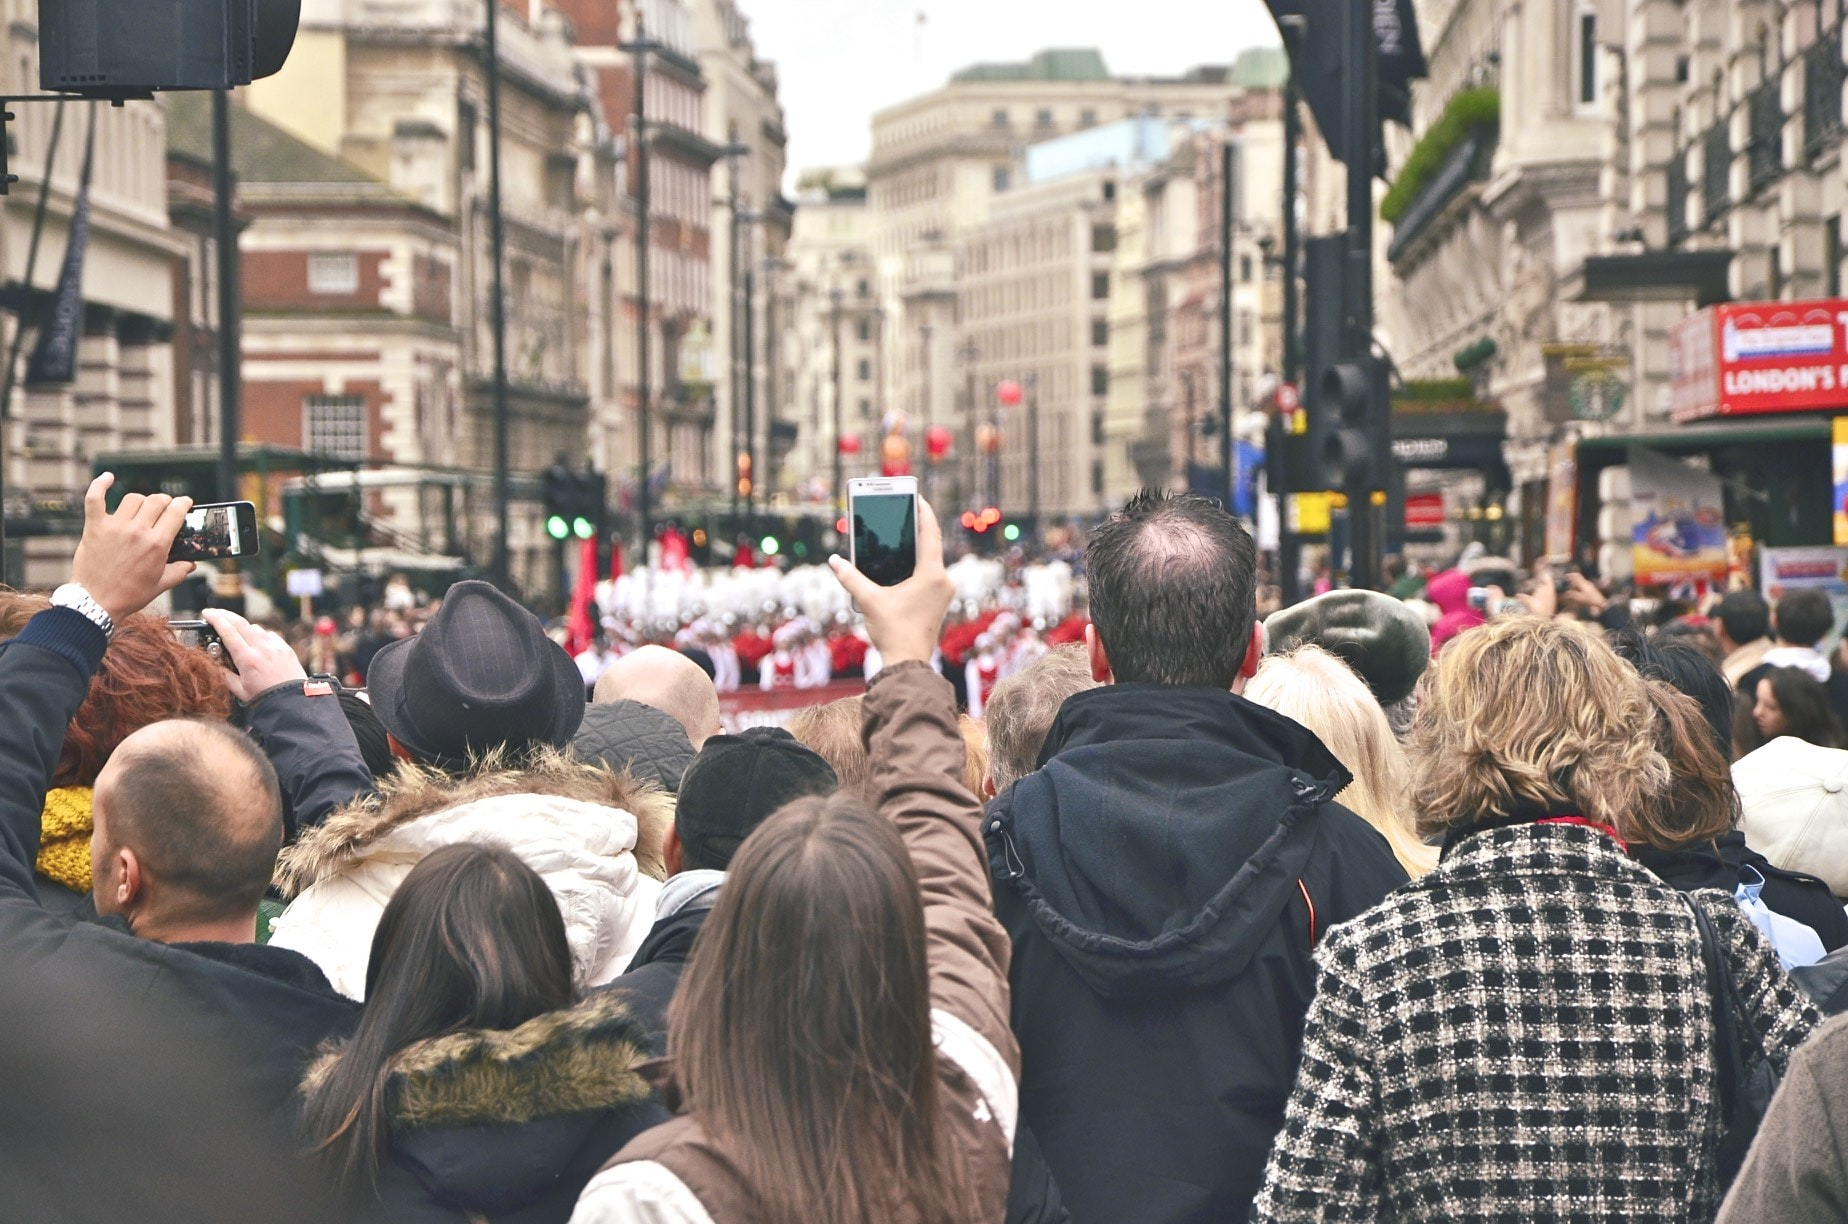 A crowd of people filming a parade in Piccadilly Circus with their smartphones